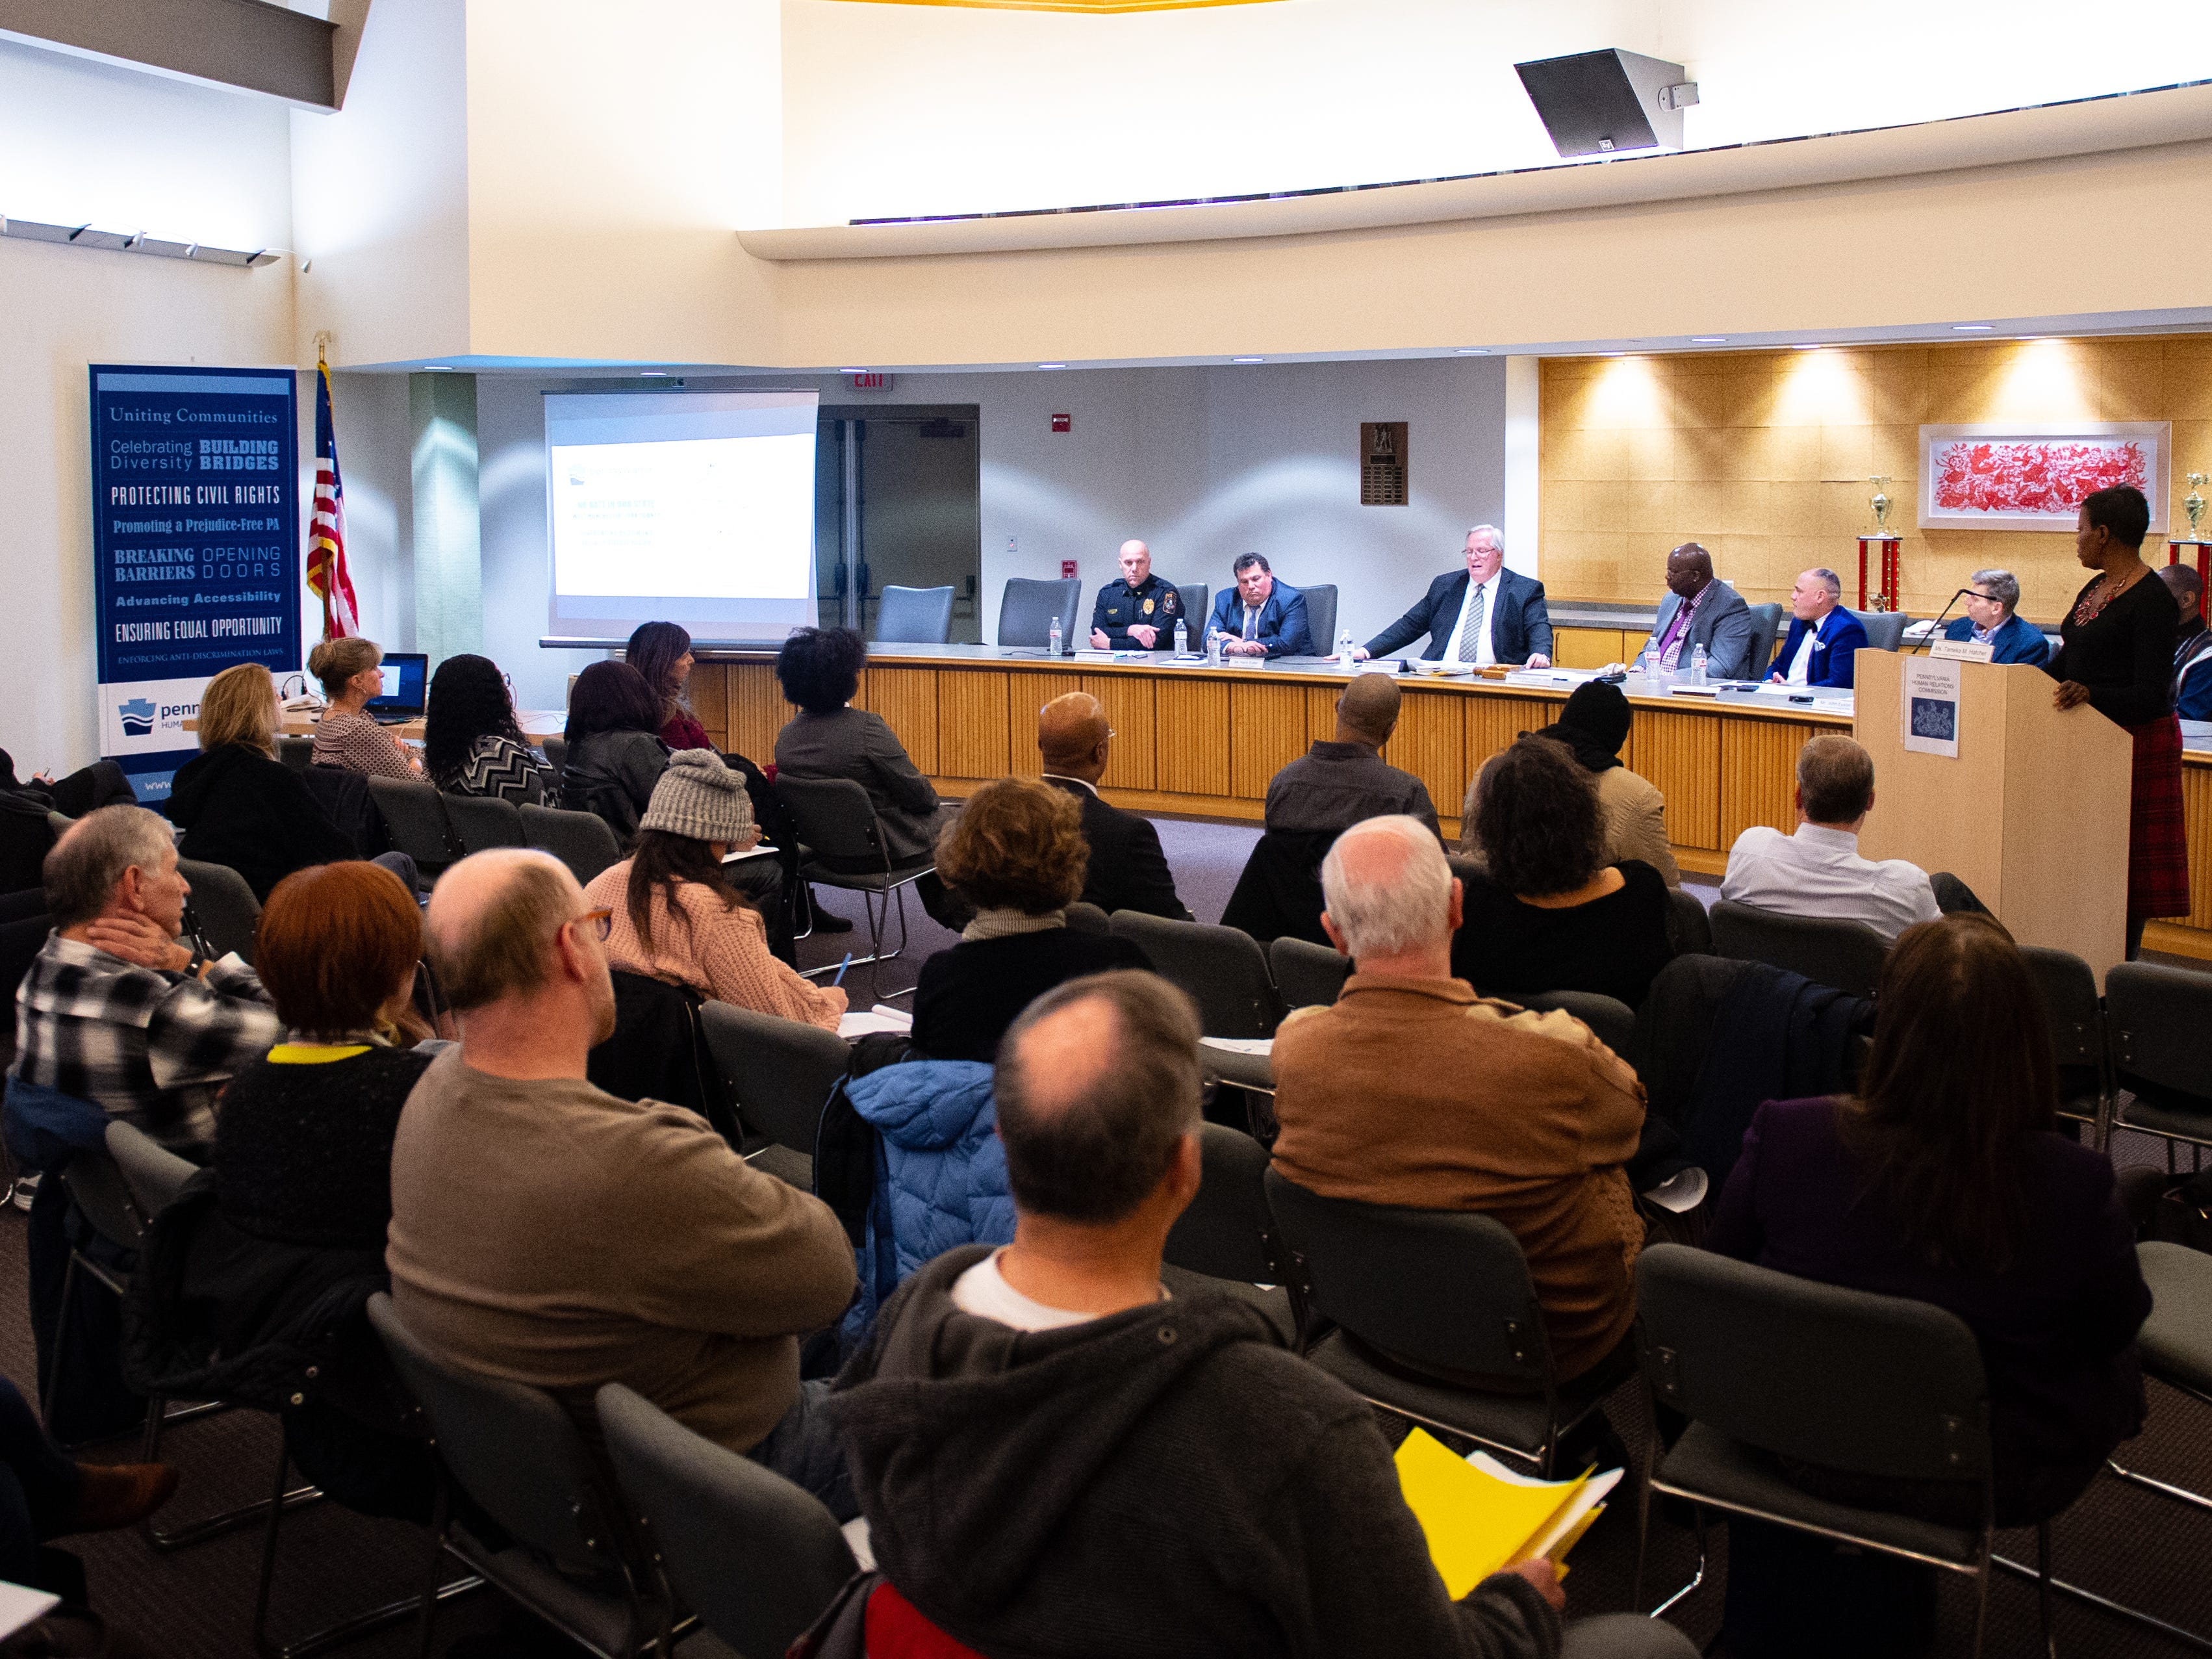 The panelists spoke to a full audience of Yorkers of all races and ethnicities concerned about their safety during the No Hate in Our State town hall meeting at the West Manchester Township Building, December 20, 2018.